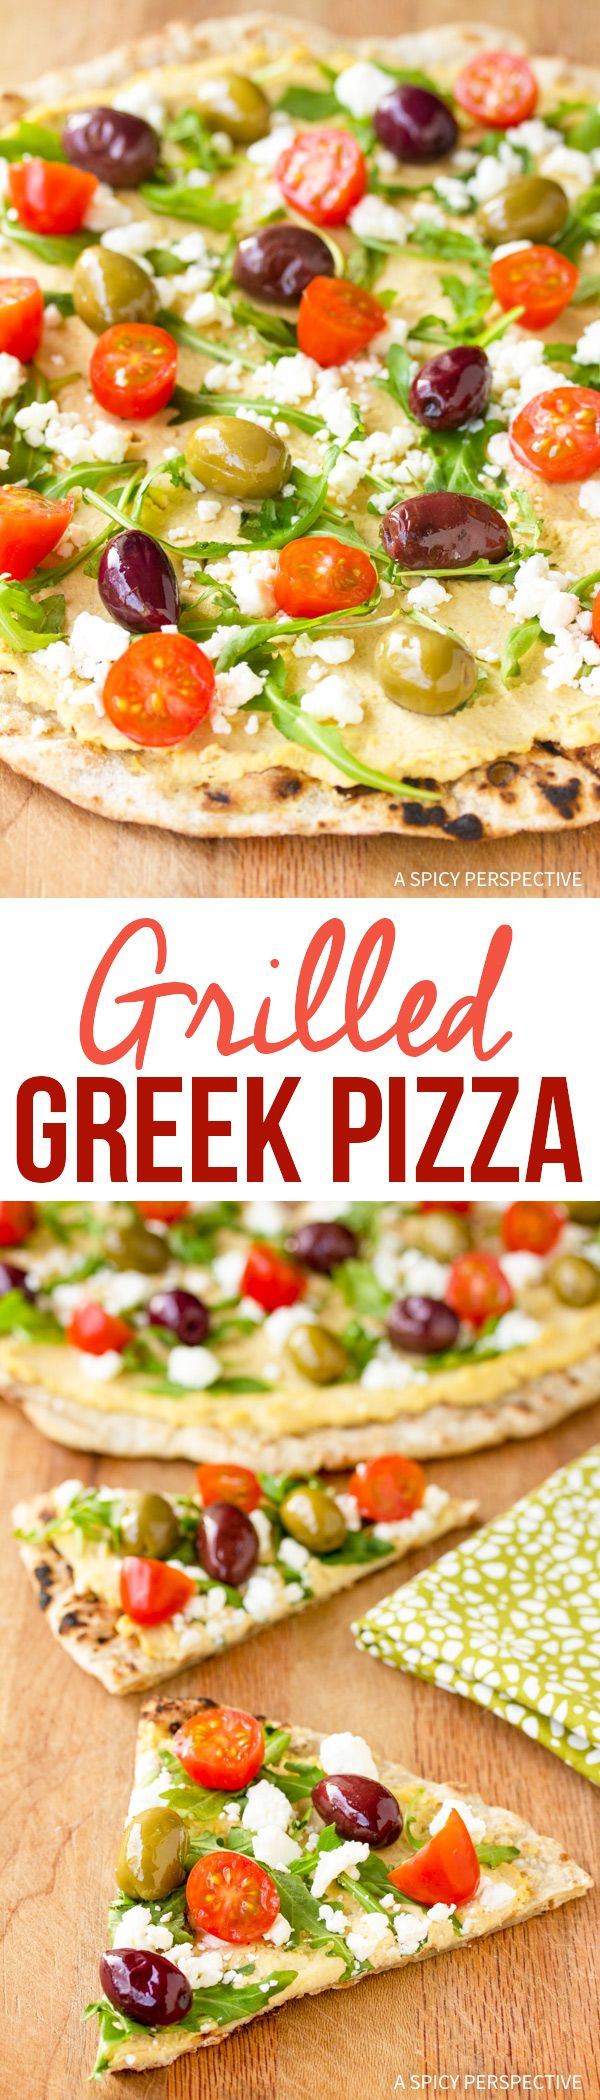 Fresh Zesty Grilled Greek Pizza Recipe via @spicyperspectiv